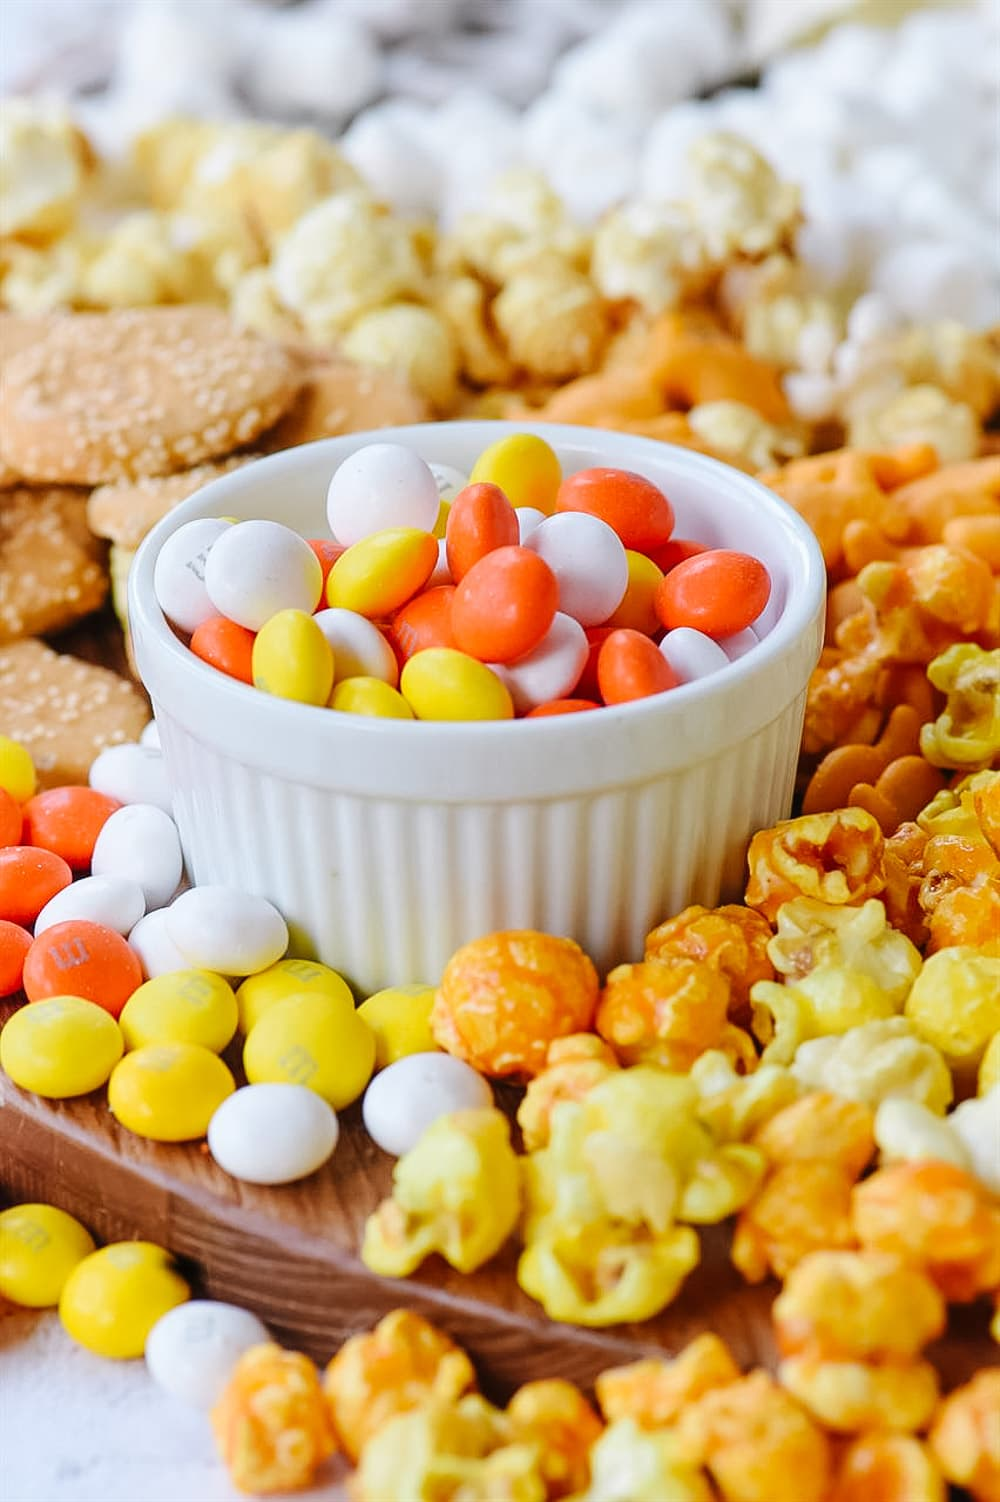 Candy Corn M & M's in a bowl